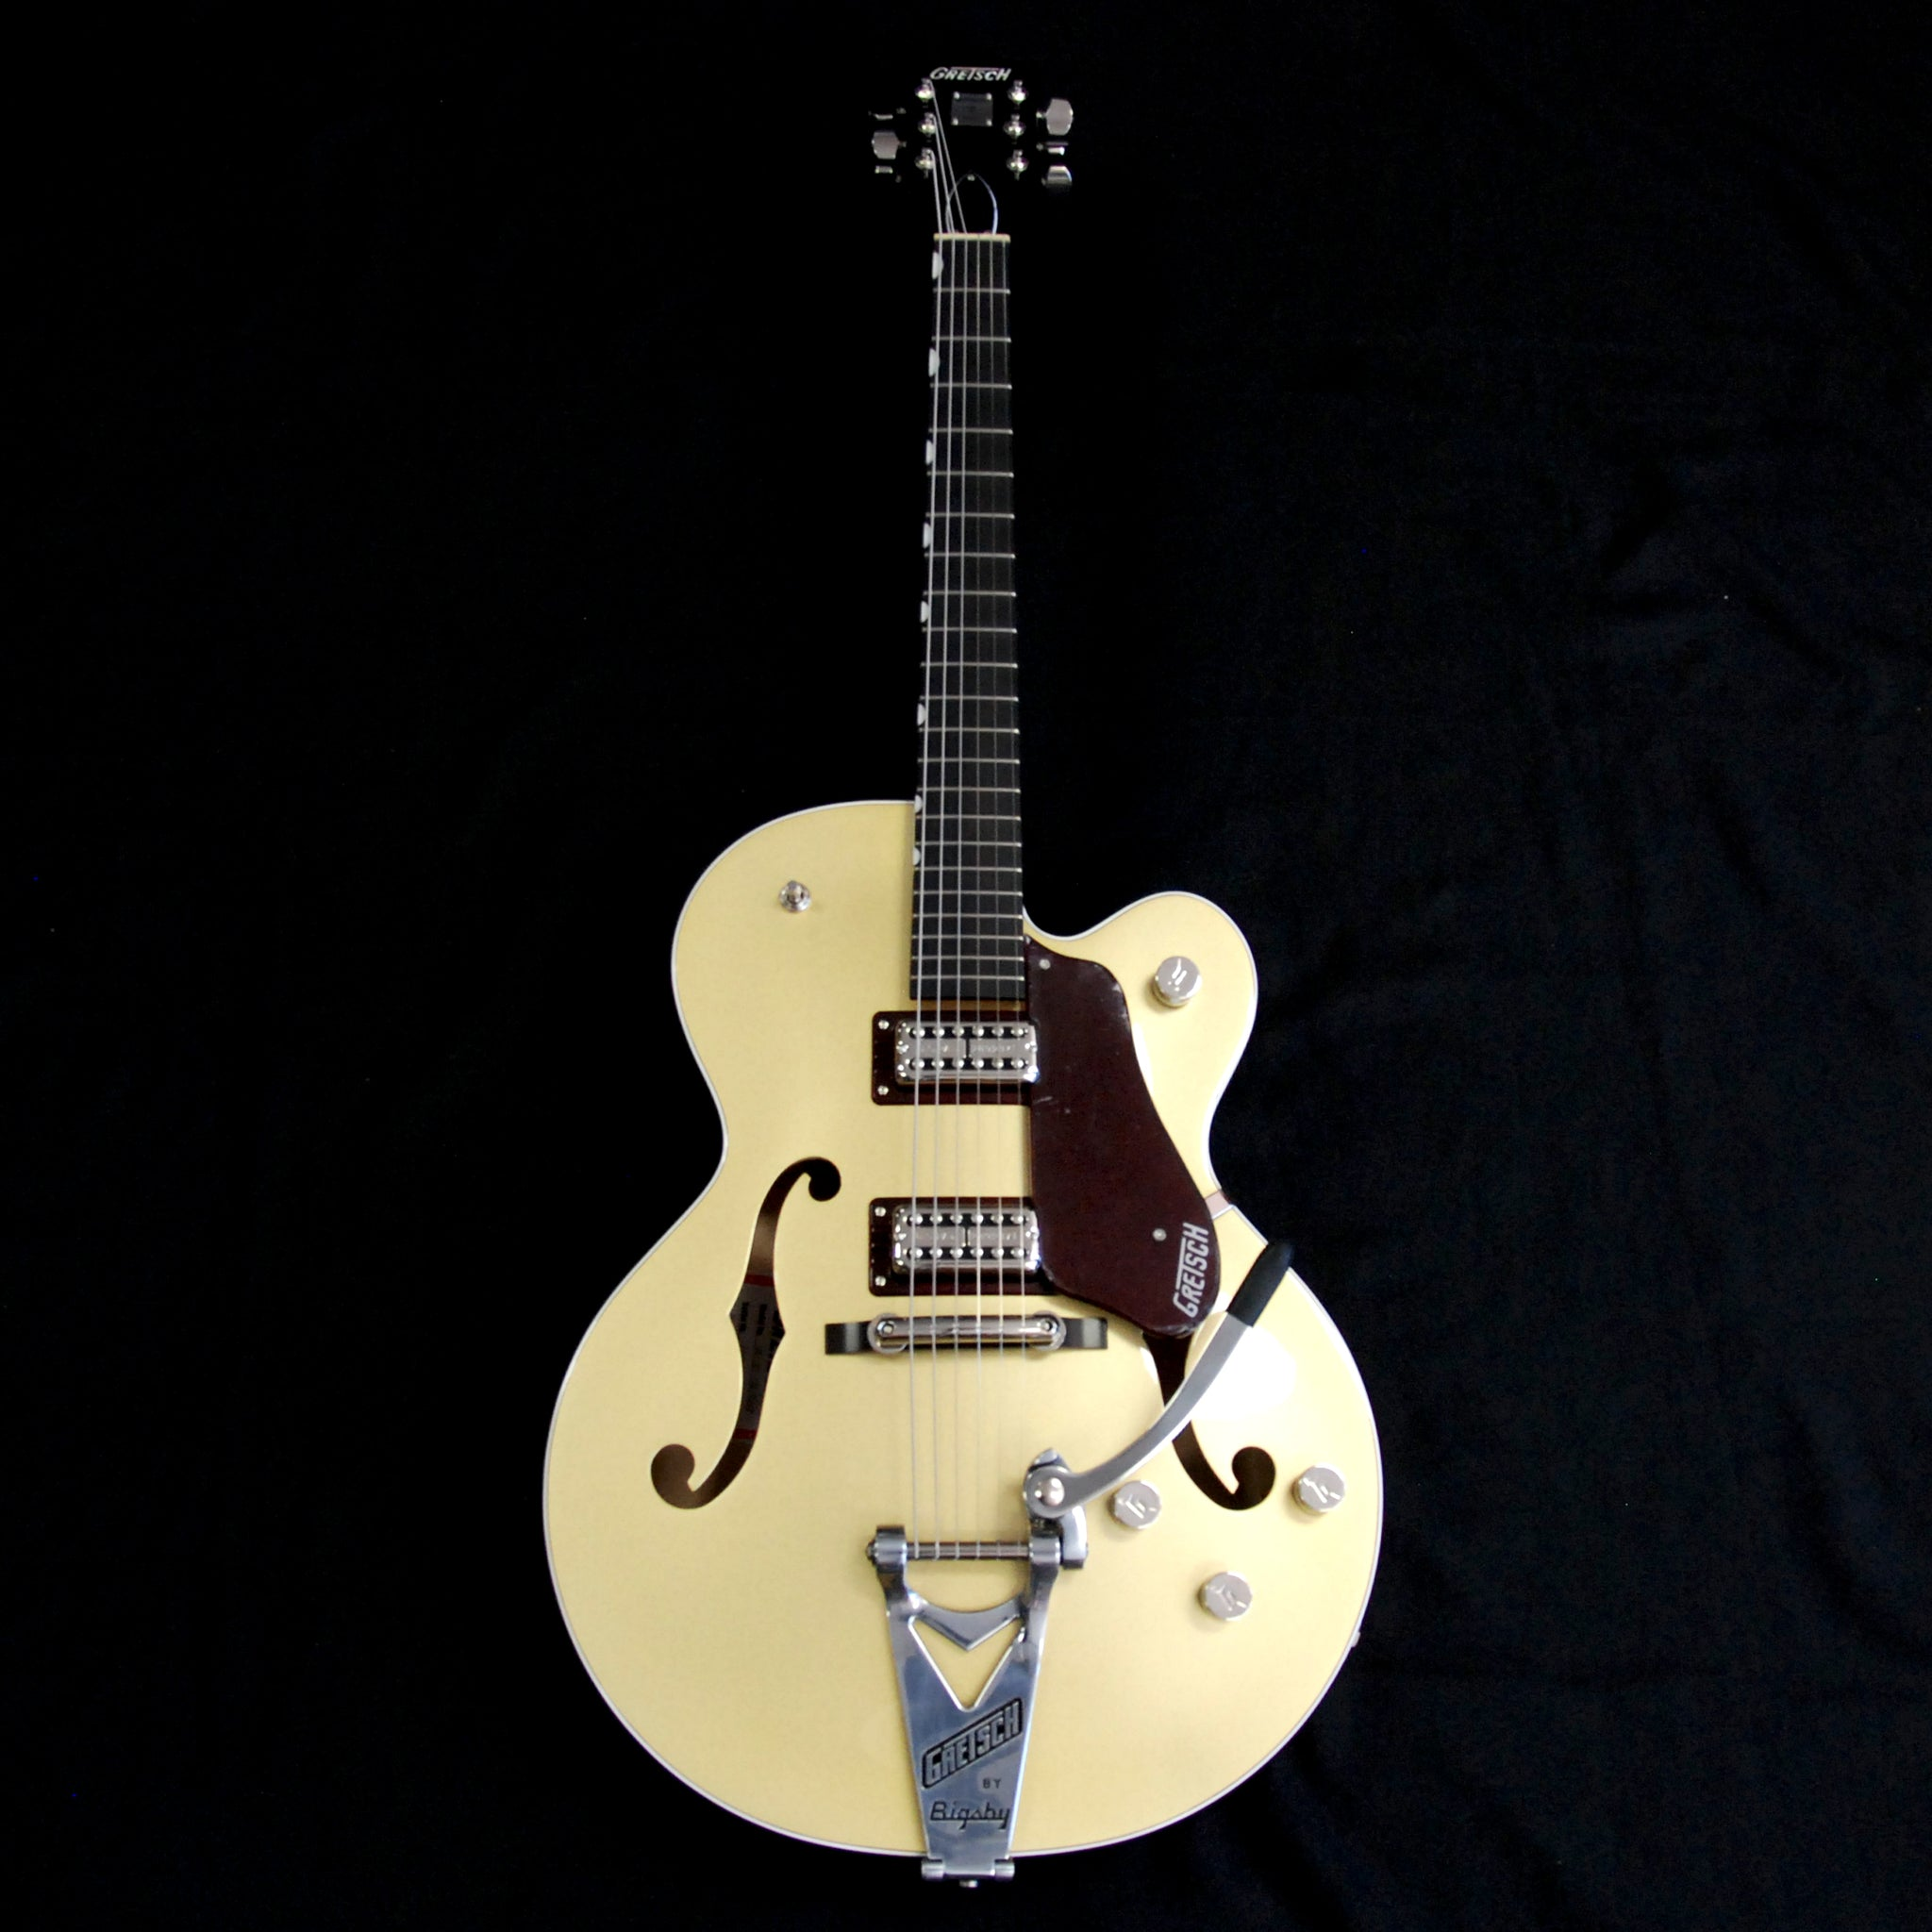 Shop online for Gretsch G6118T-135 135th Limited Anniversary Two Tone Casino Gold/Dark Cherry Metallic [2401103844] today.  Now available for purchase from Midlothian Music of Orland Park, Illinois, USA